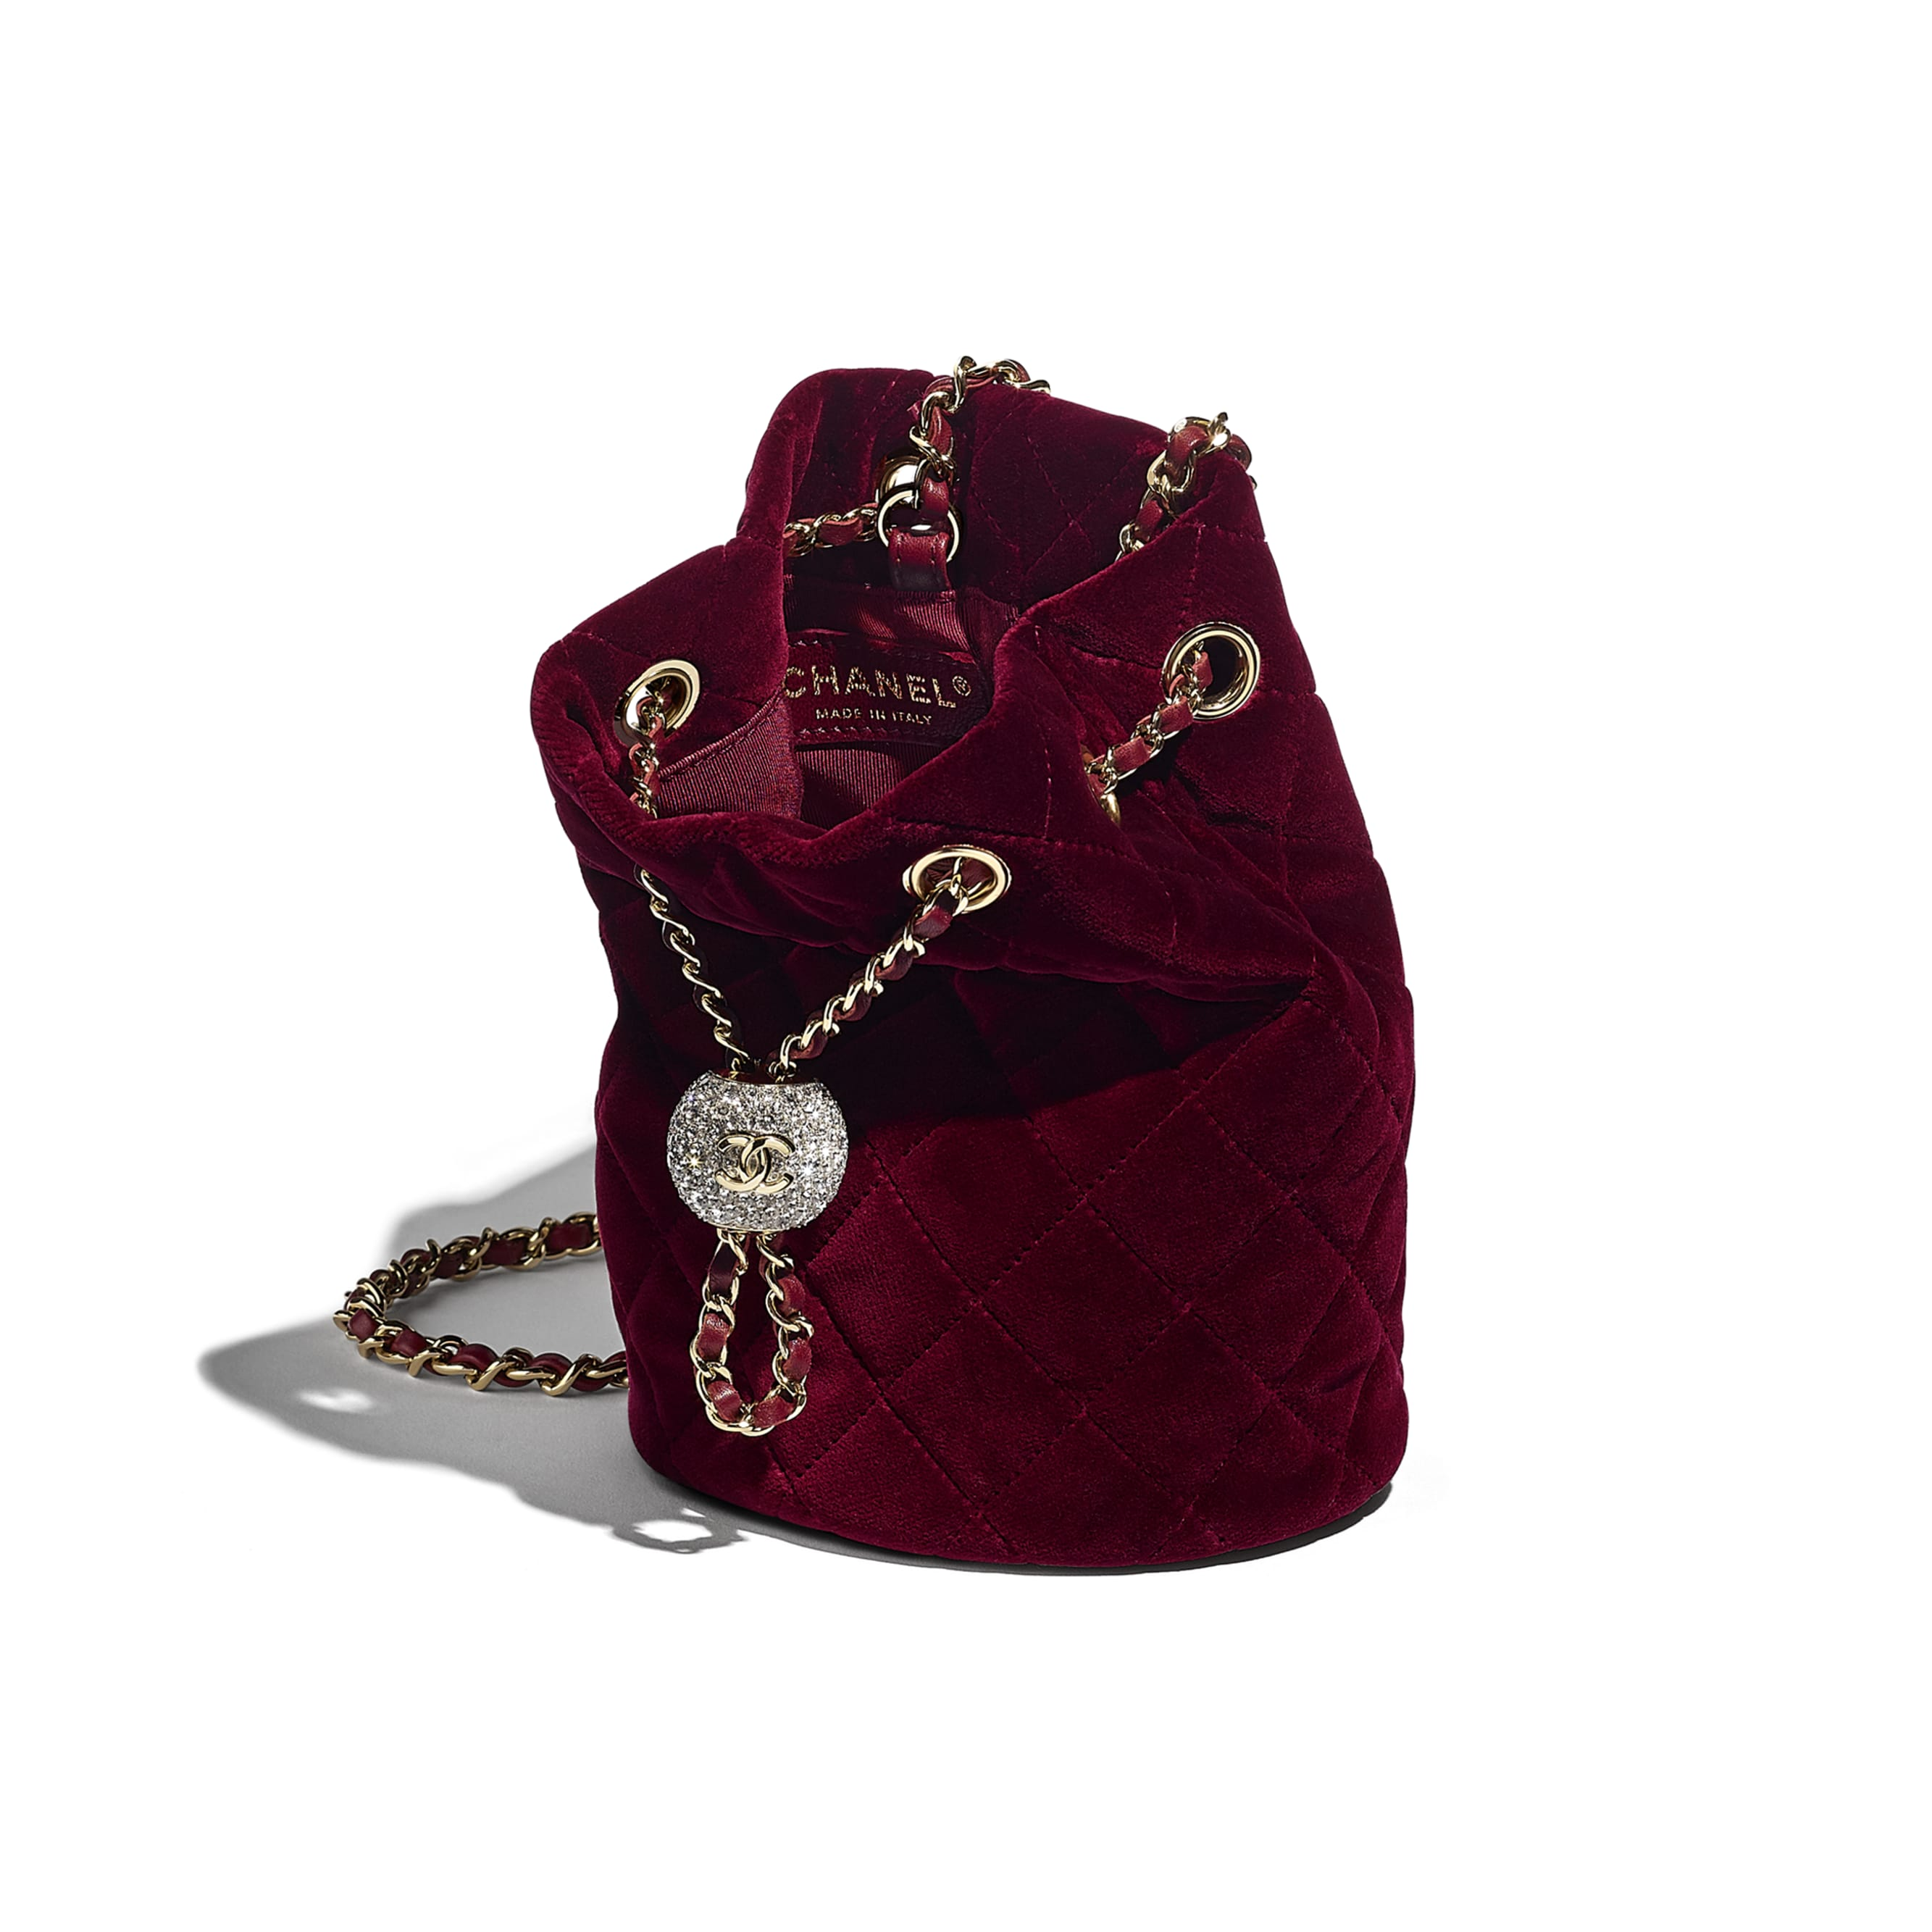 Drawstring Bag - Burgundy - Velvet, Diamanté & Gold-Tone Metal - CHANEL - Other view - see standard sized version